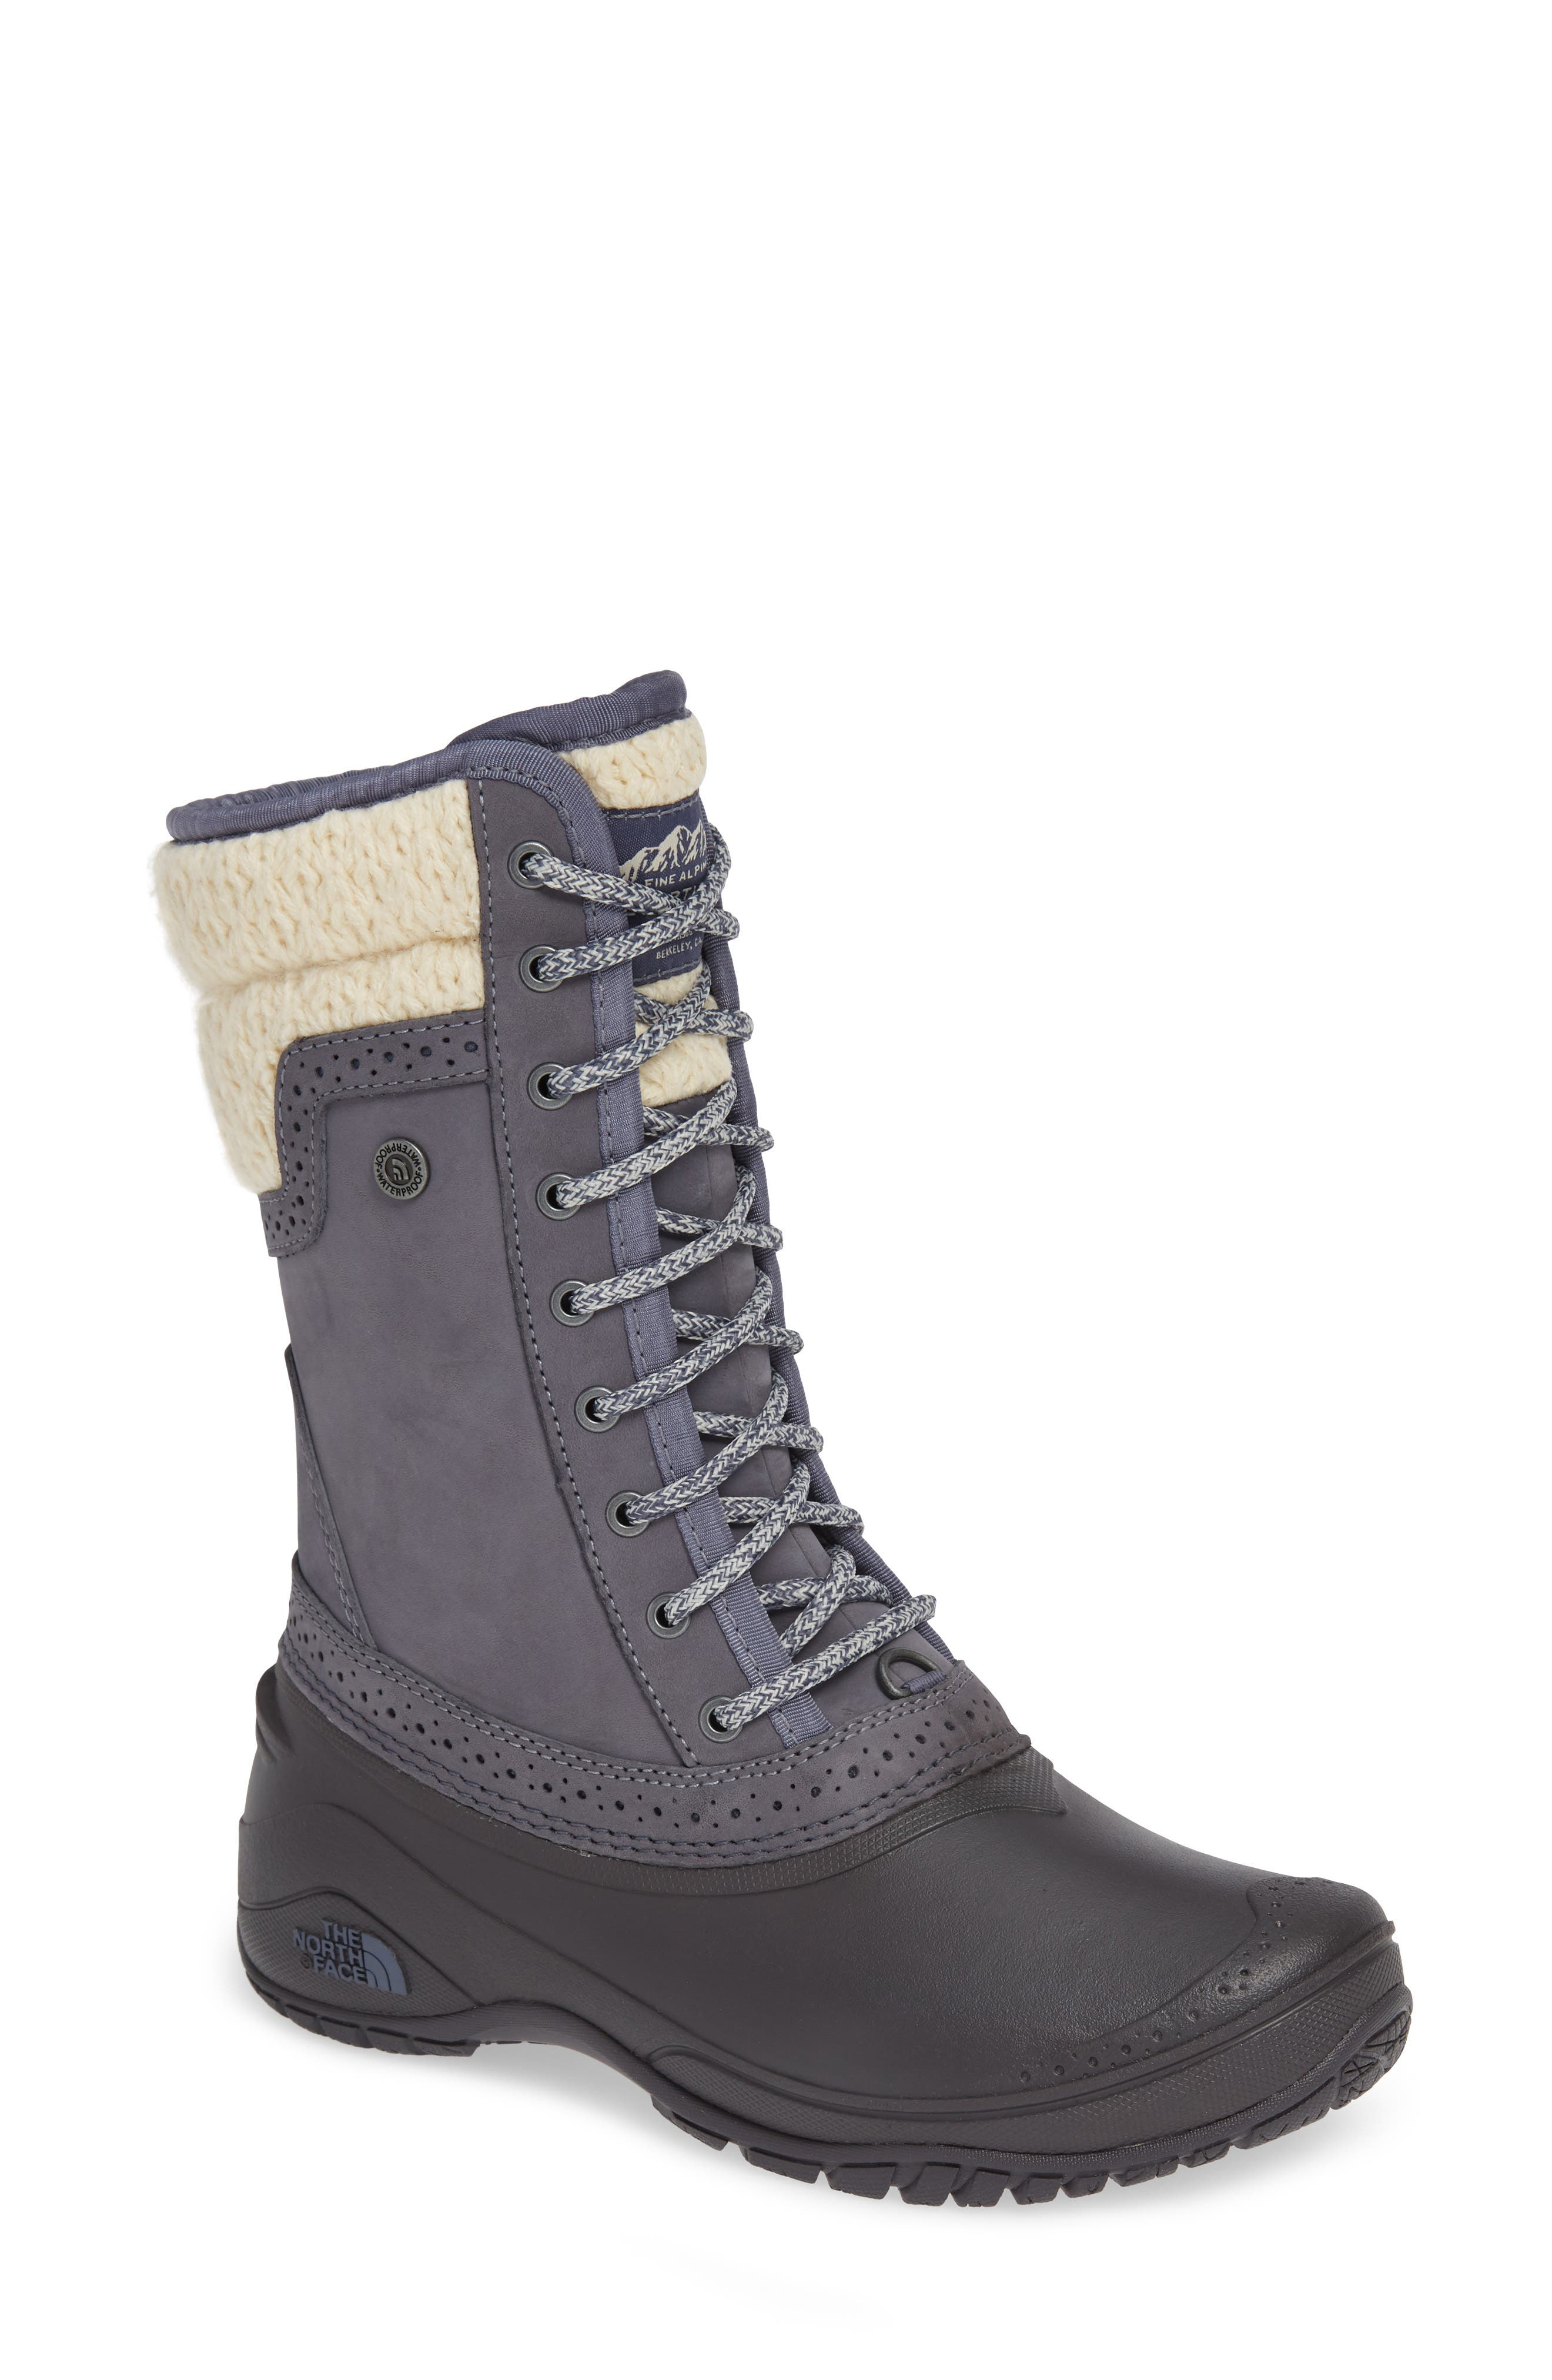 Shellista Waterproof Insulated Snow Boot,                         Main,                         color, Grisaille Grey/ Vintage White